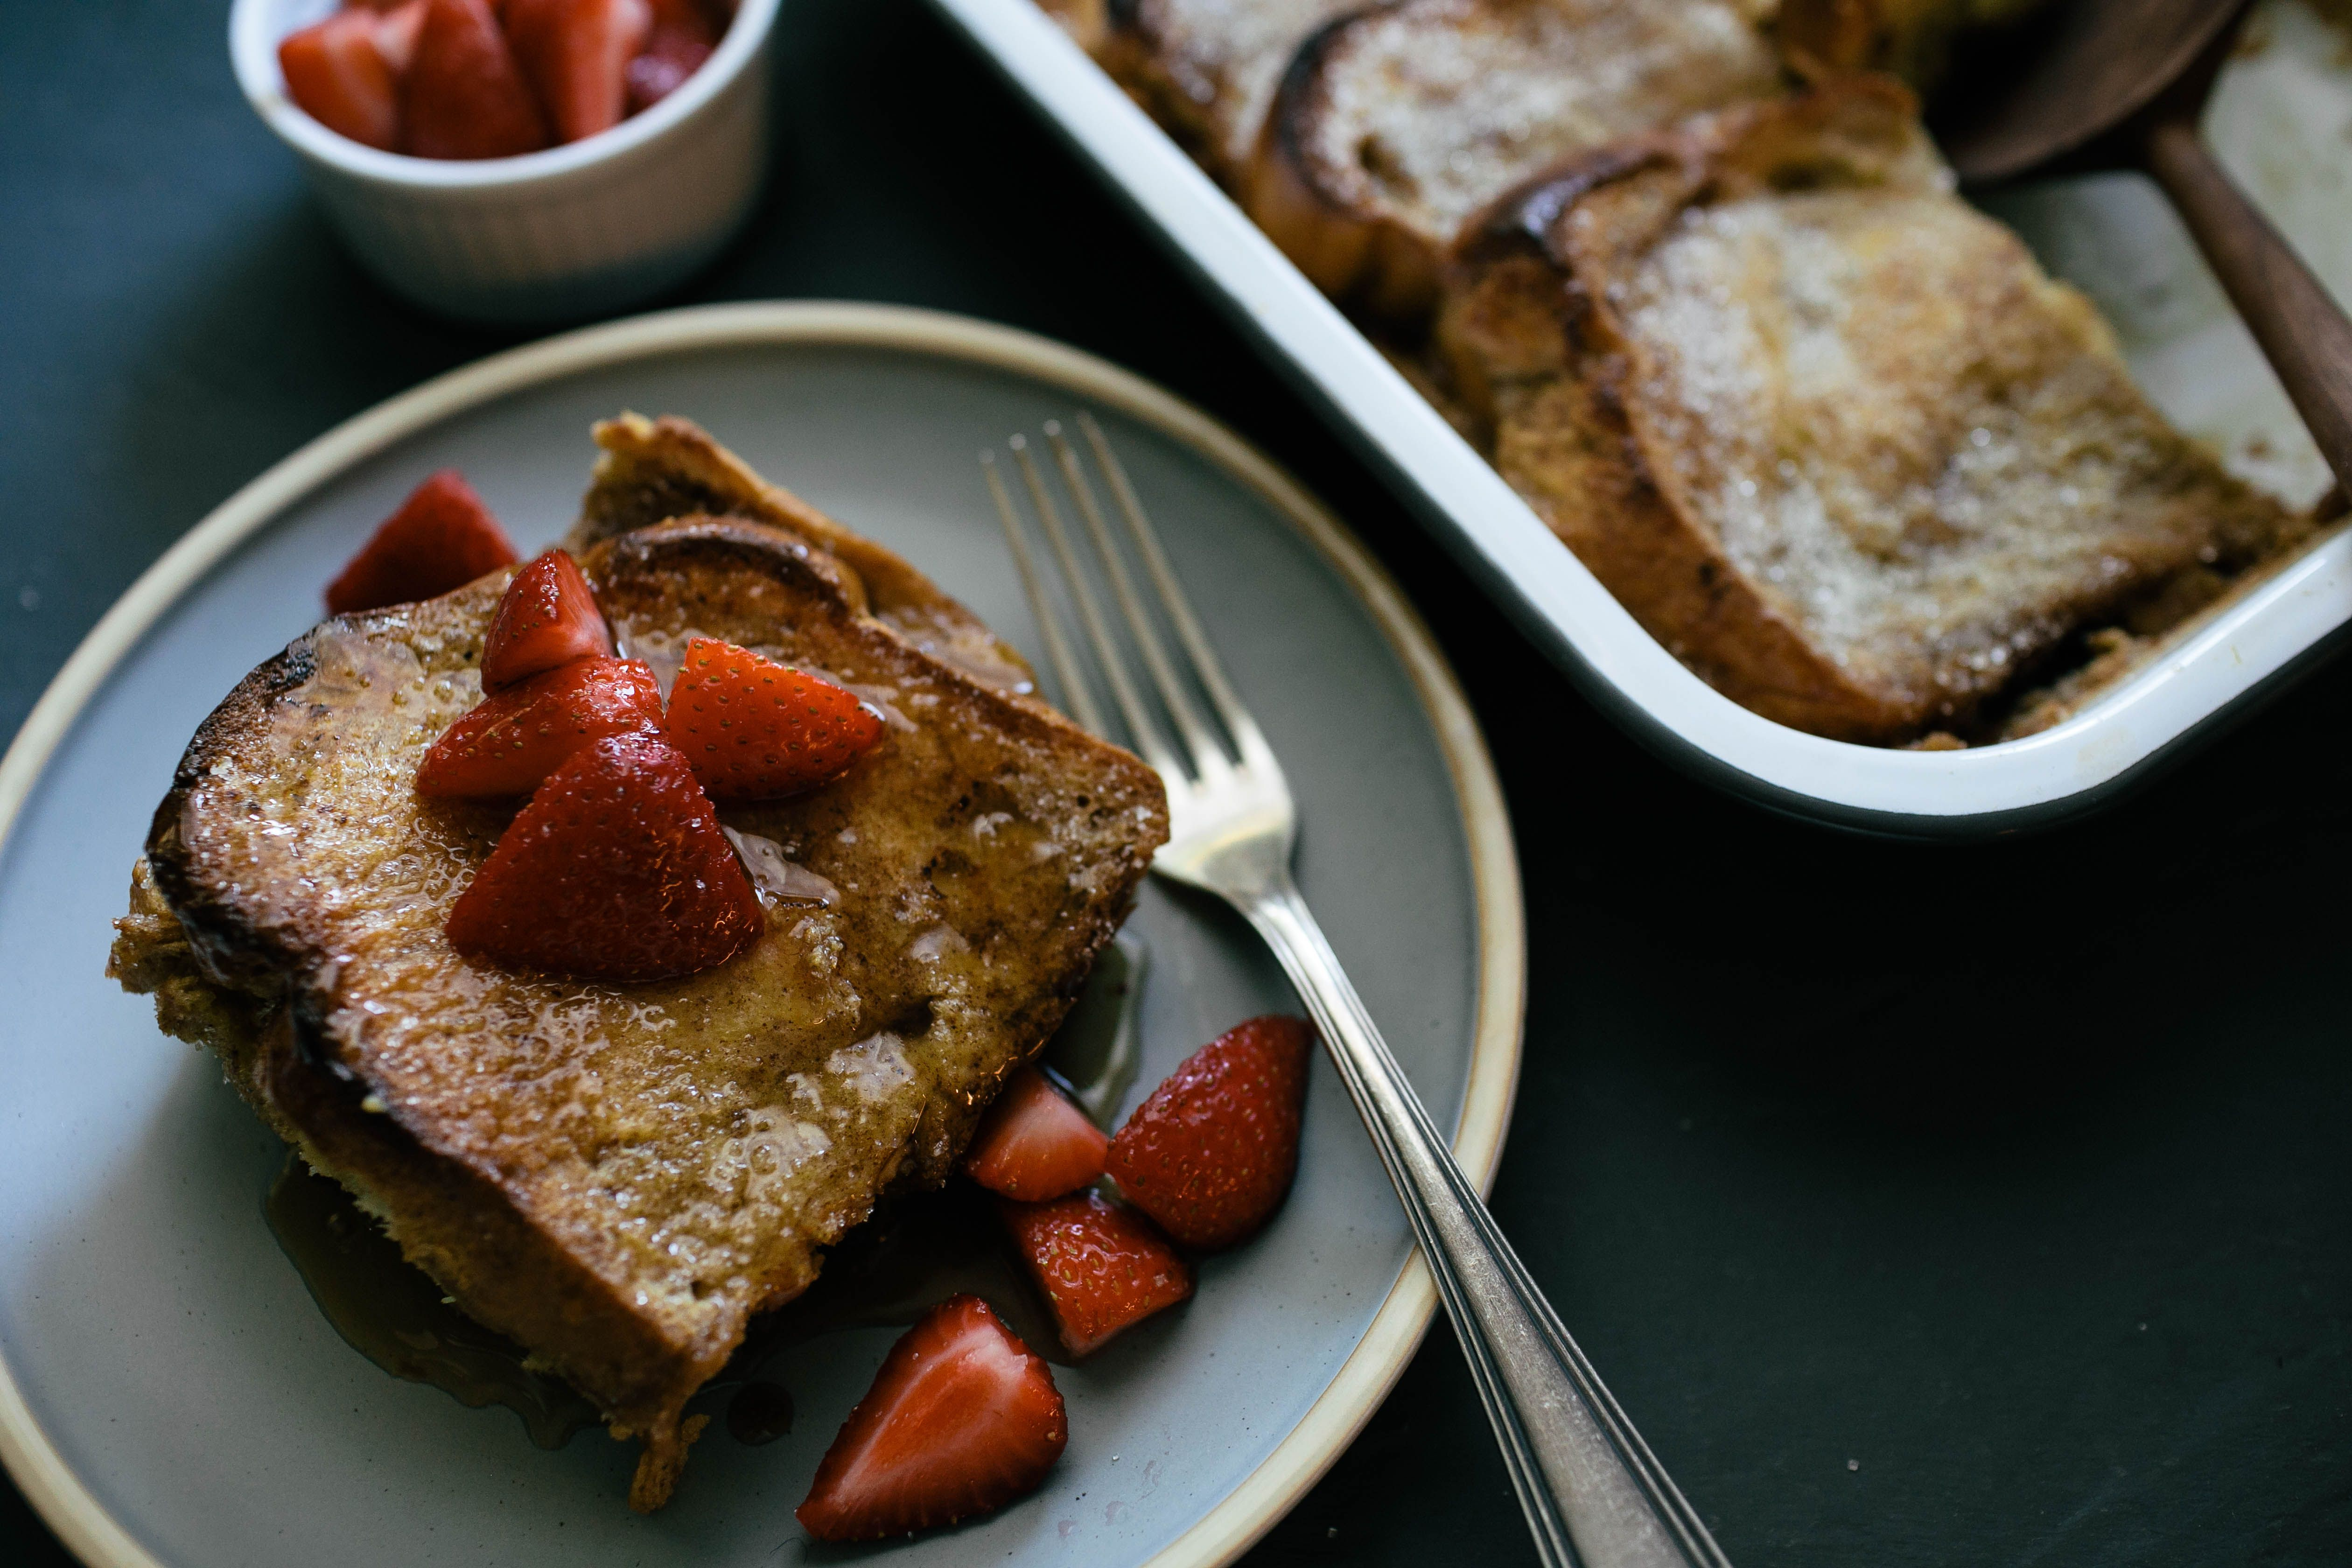 Try This Crème Brûlée French Toast Recipe